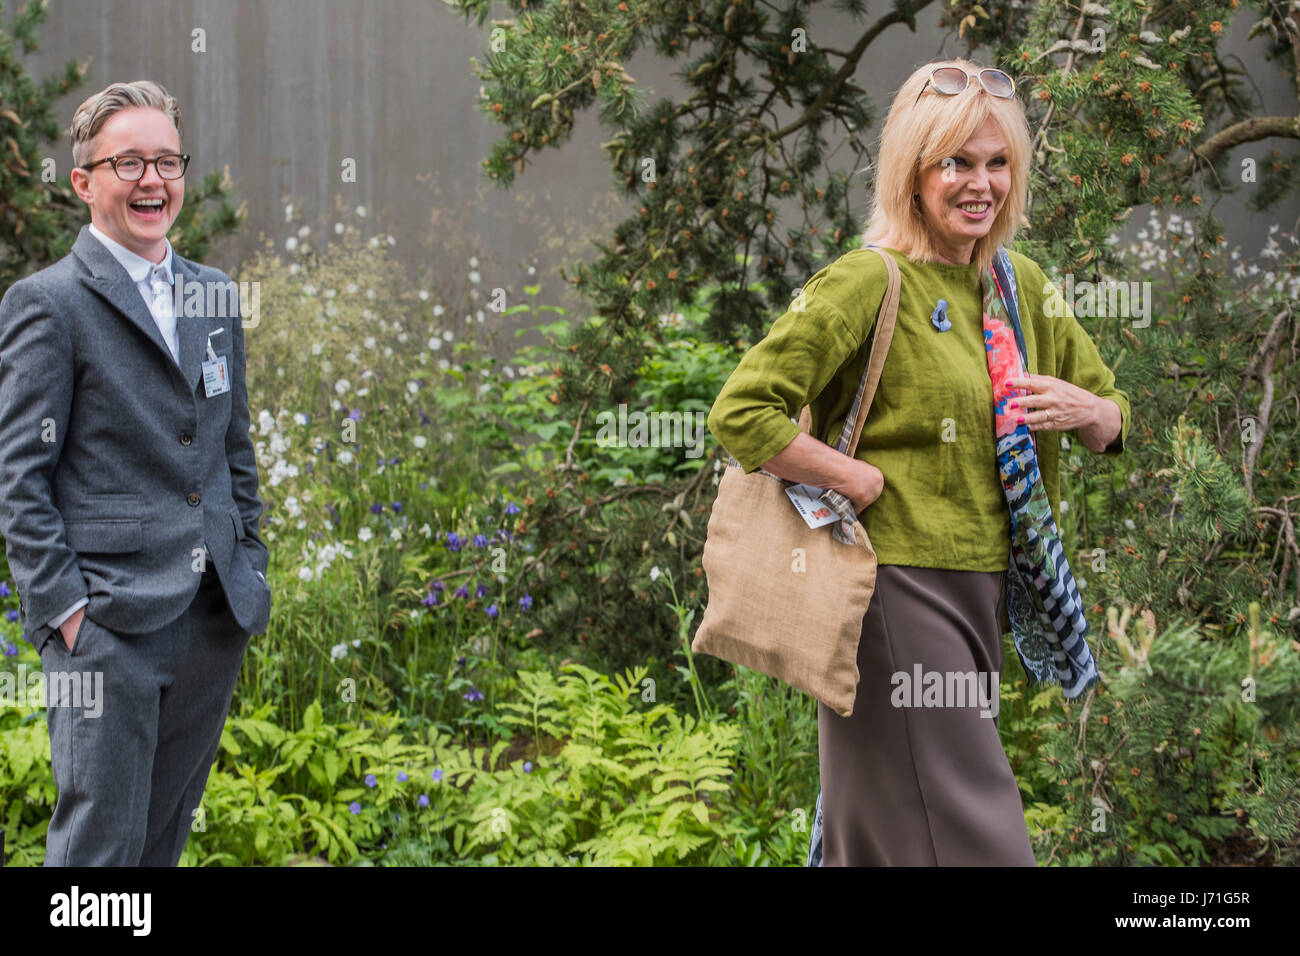 London, UK. 22nd May, 2017. Joanna Lumley - The Chelsea Flower Show organised by the Royal Horticultural Society - Stock Image